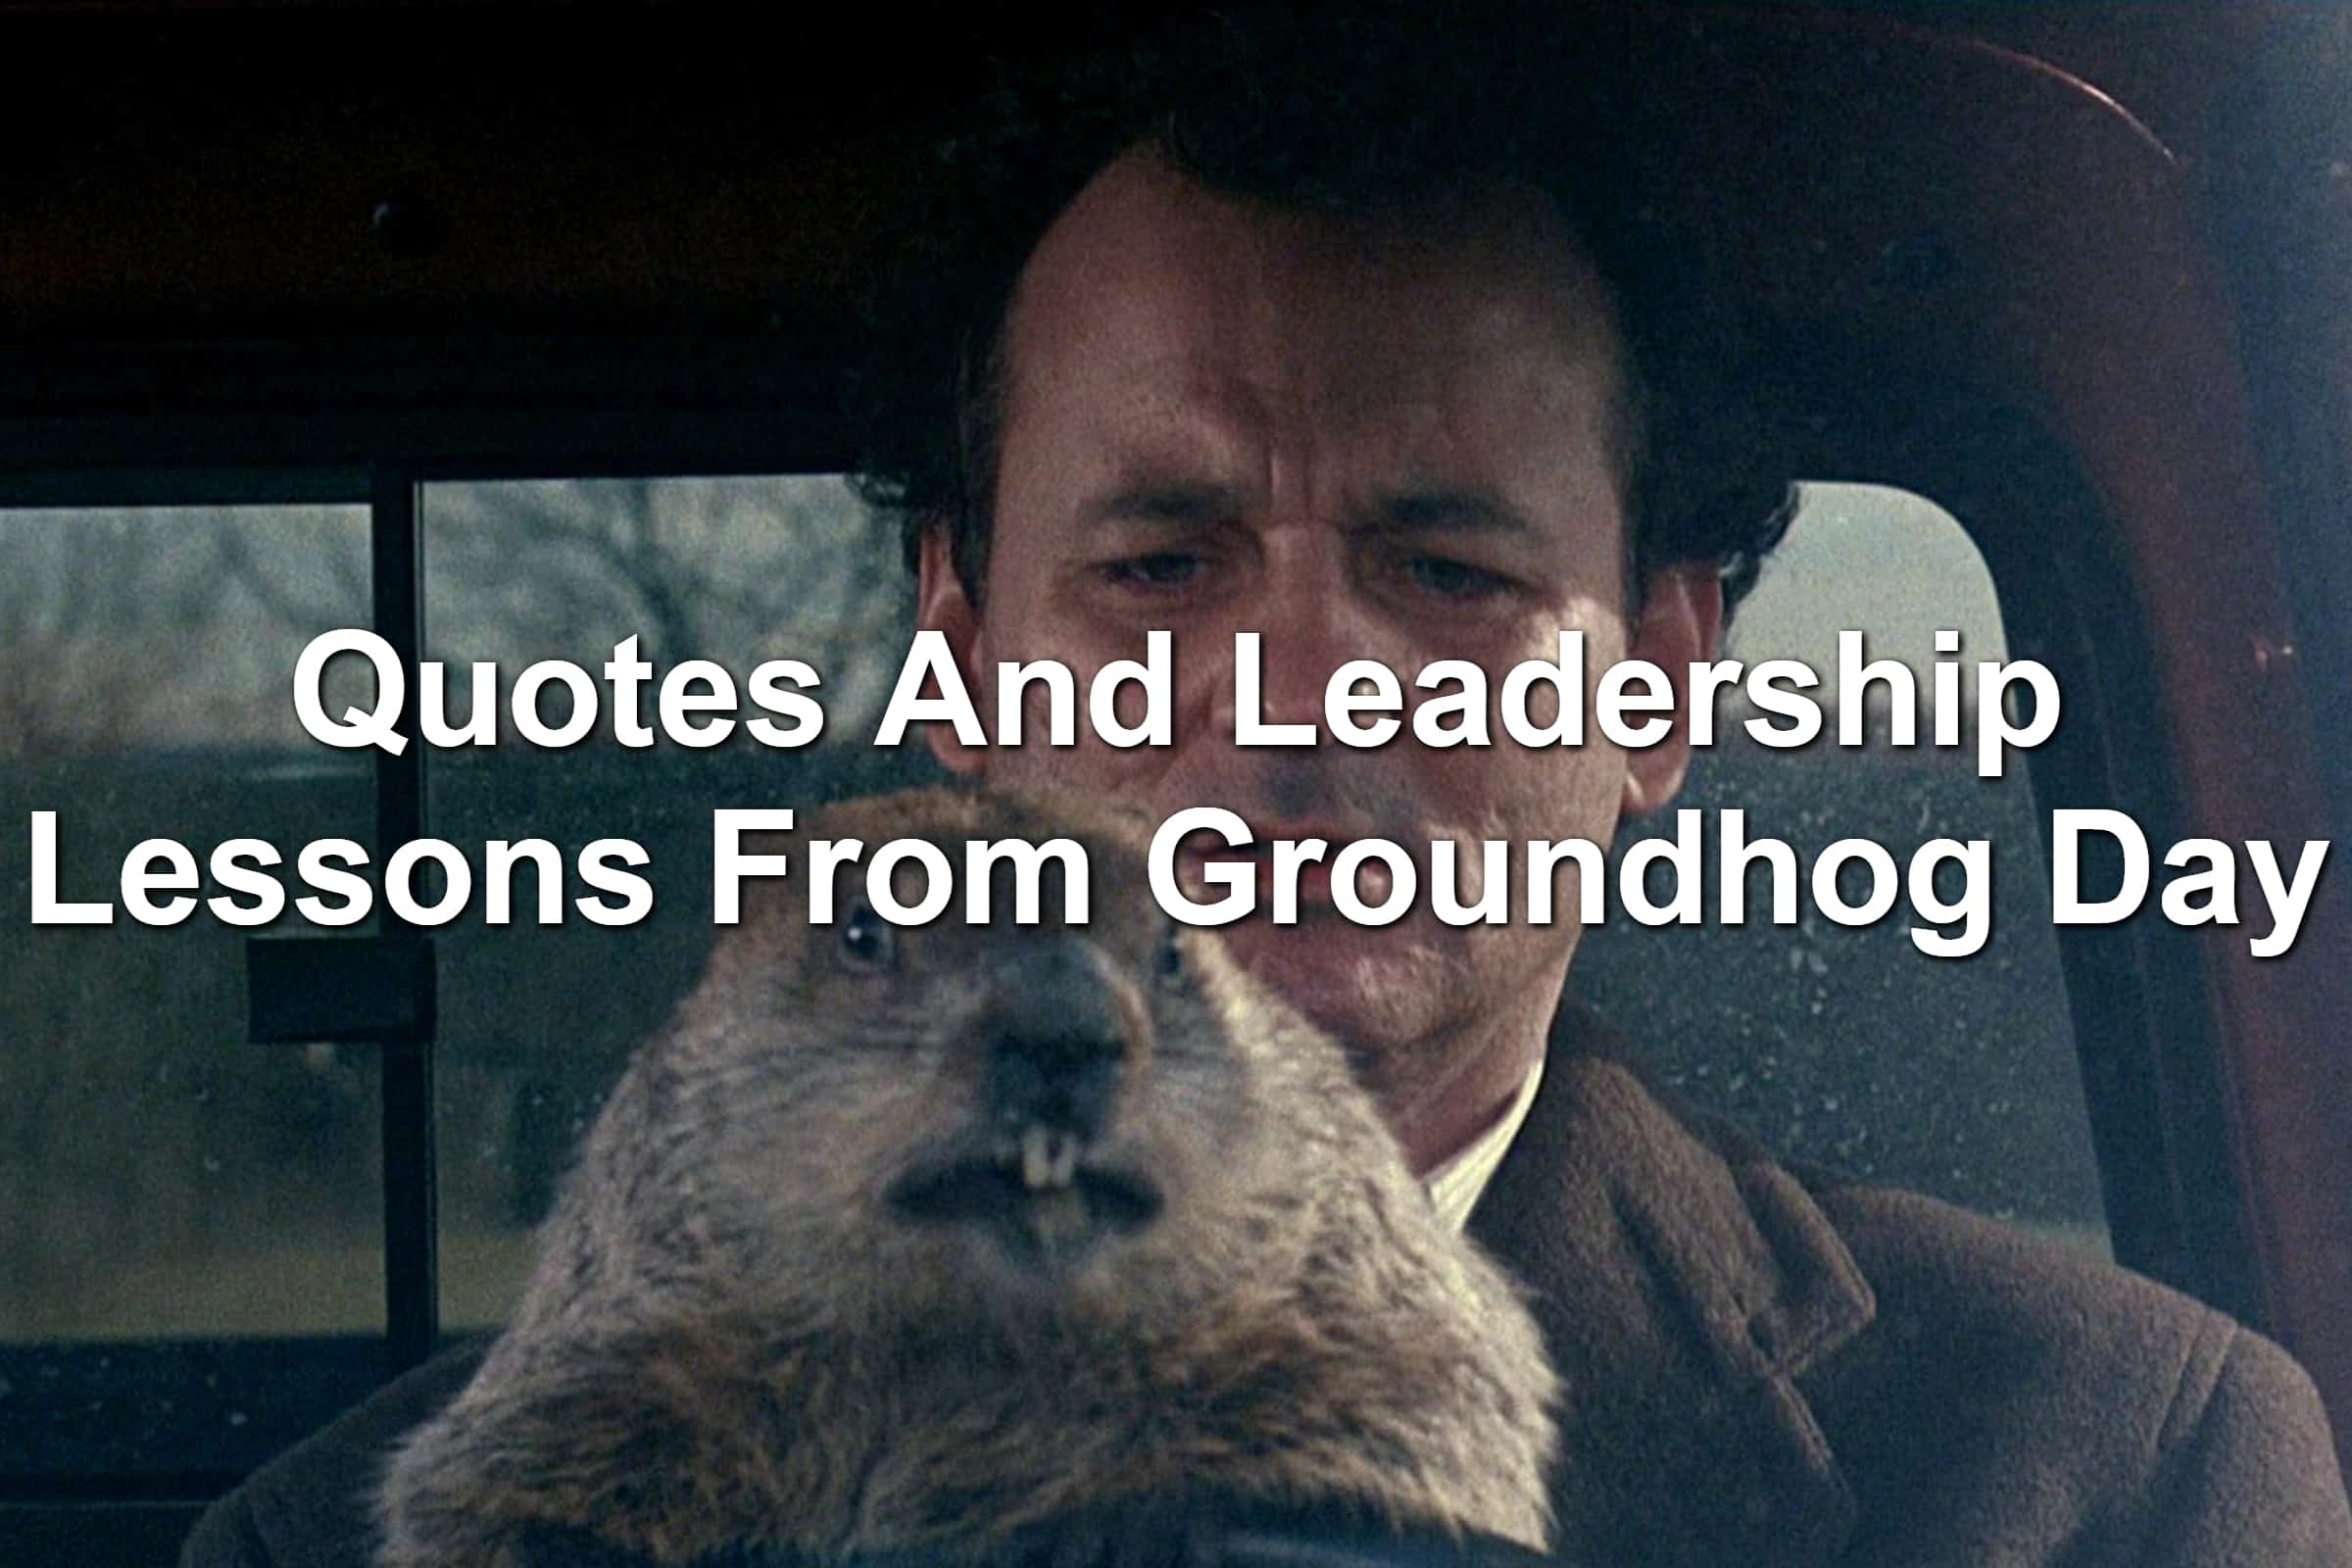 Bill Murray and a groundhog in Groundhog Day